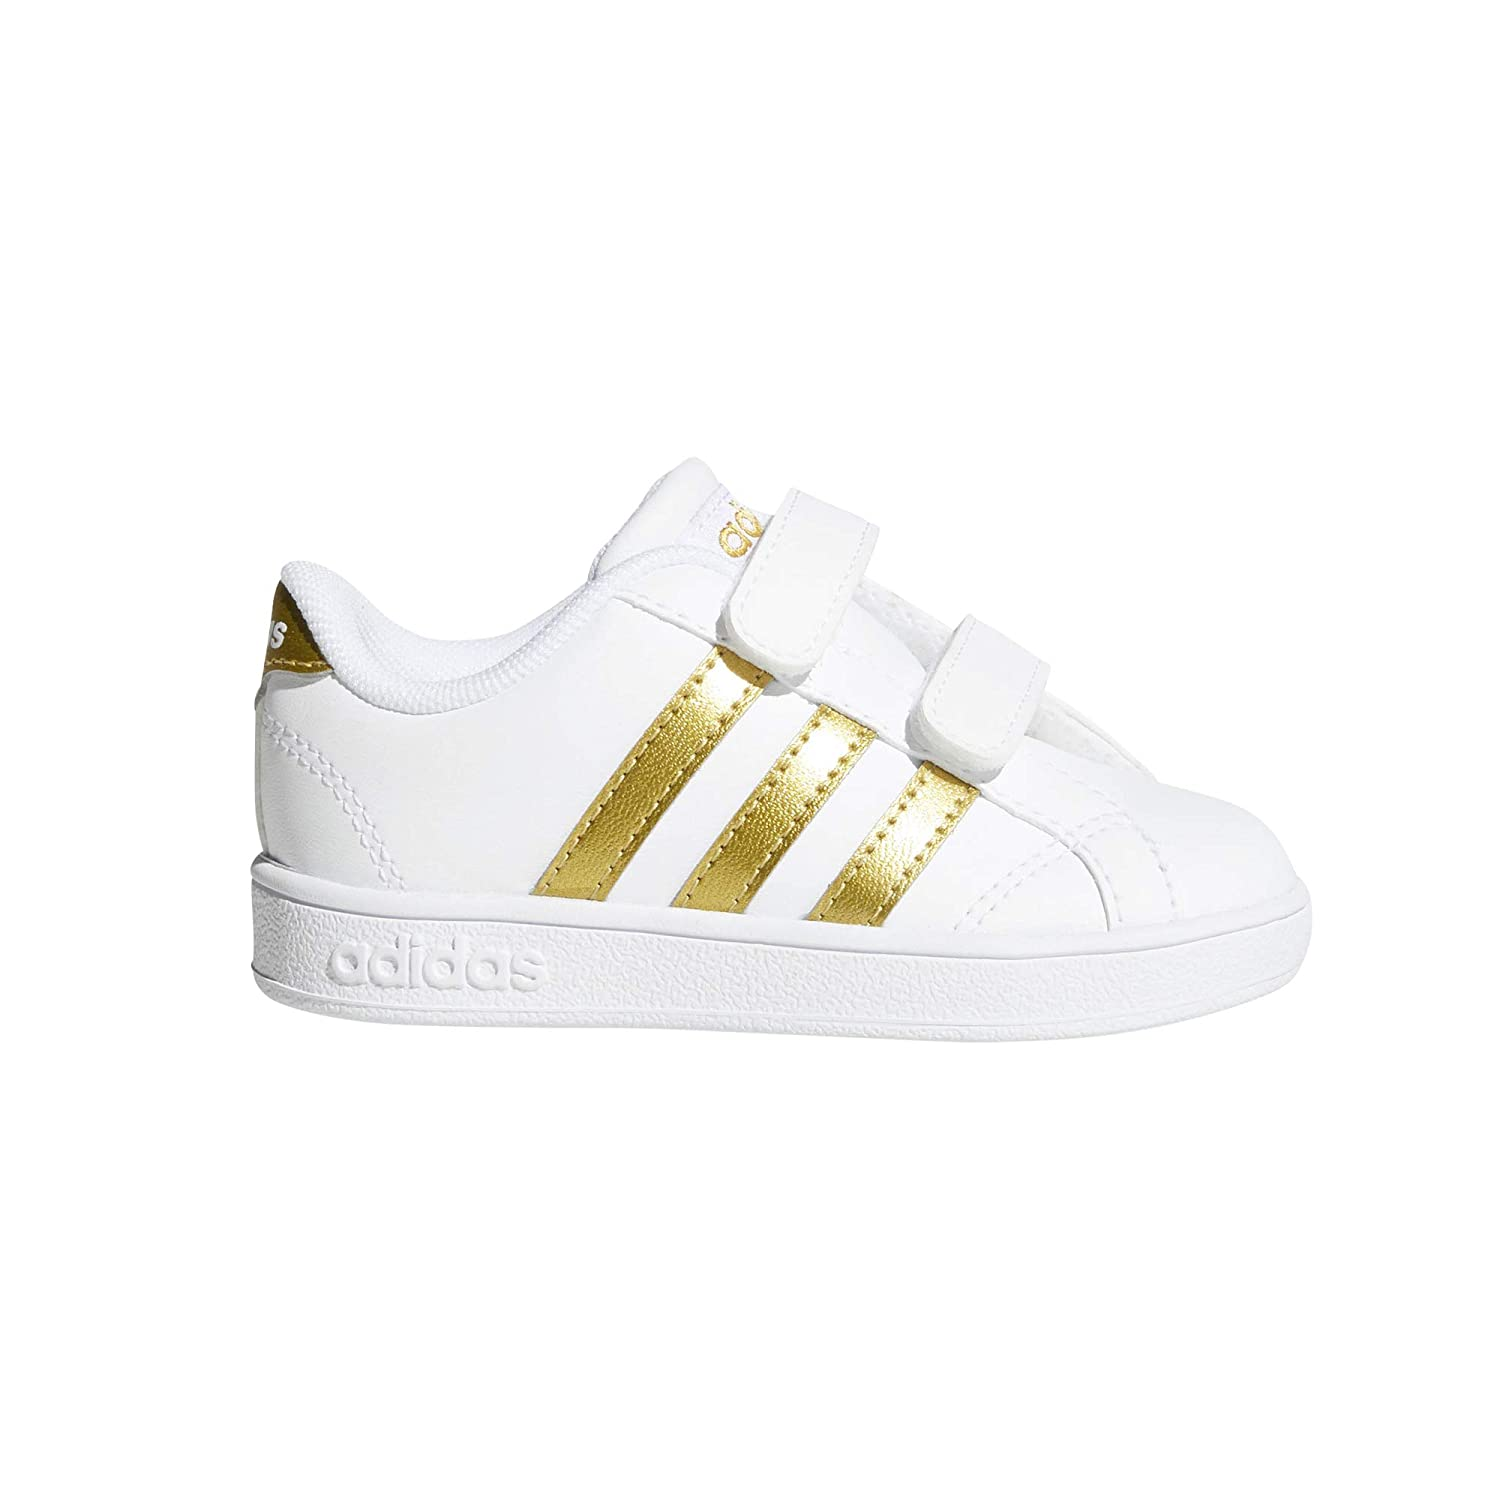 adidas Unisex-Kinder Vs Advantage Clean CMF Inf Fitnessschuhe